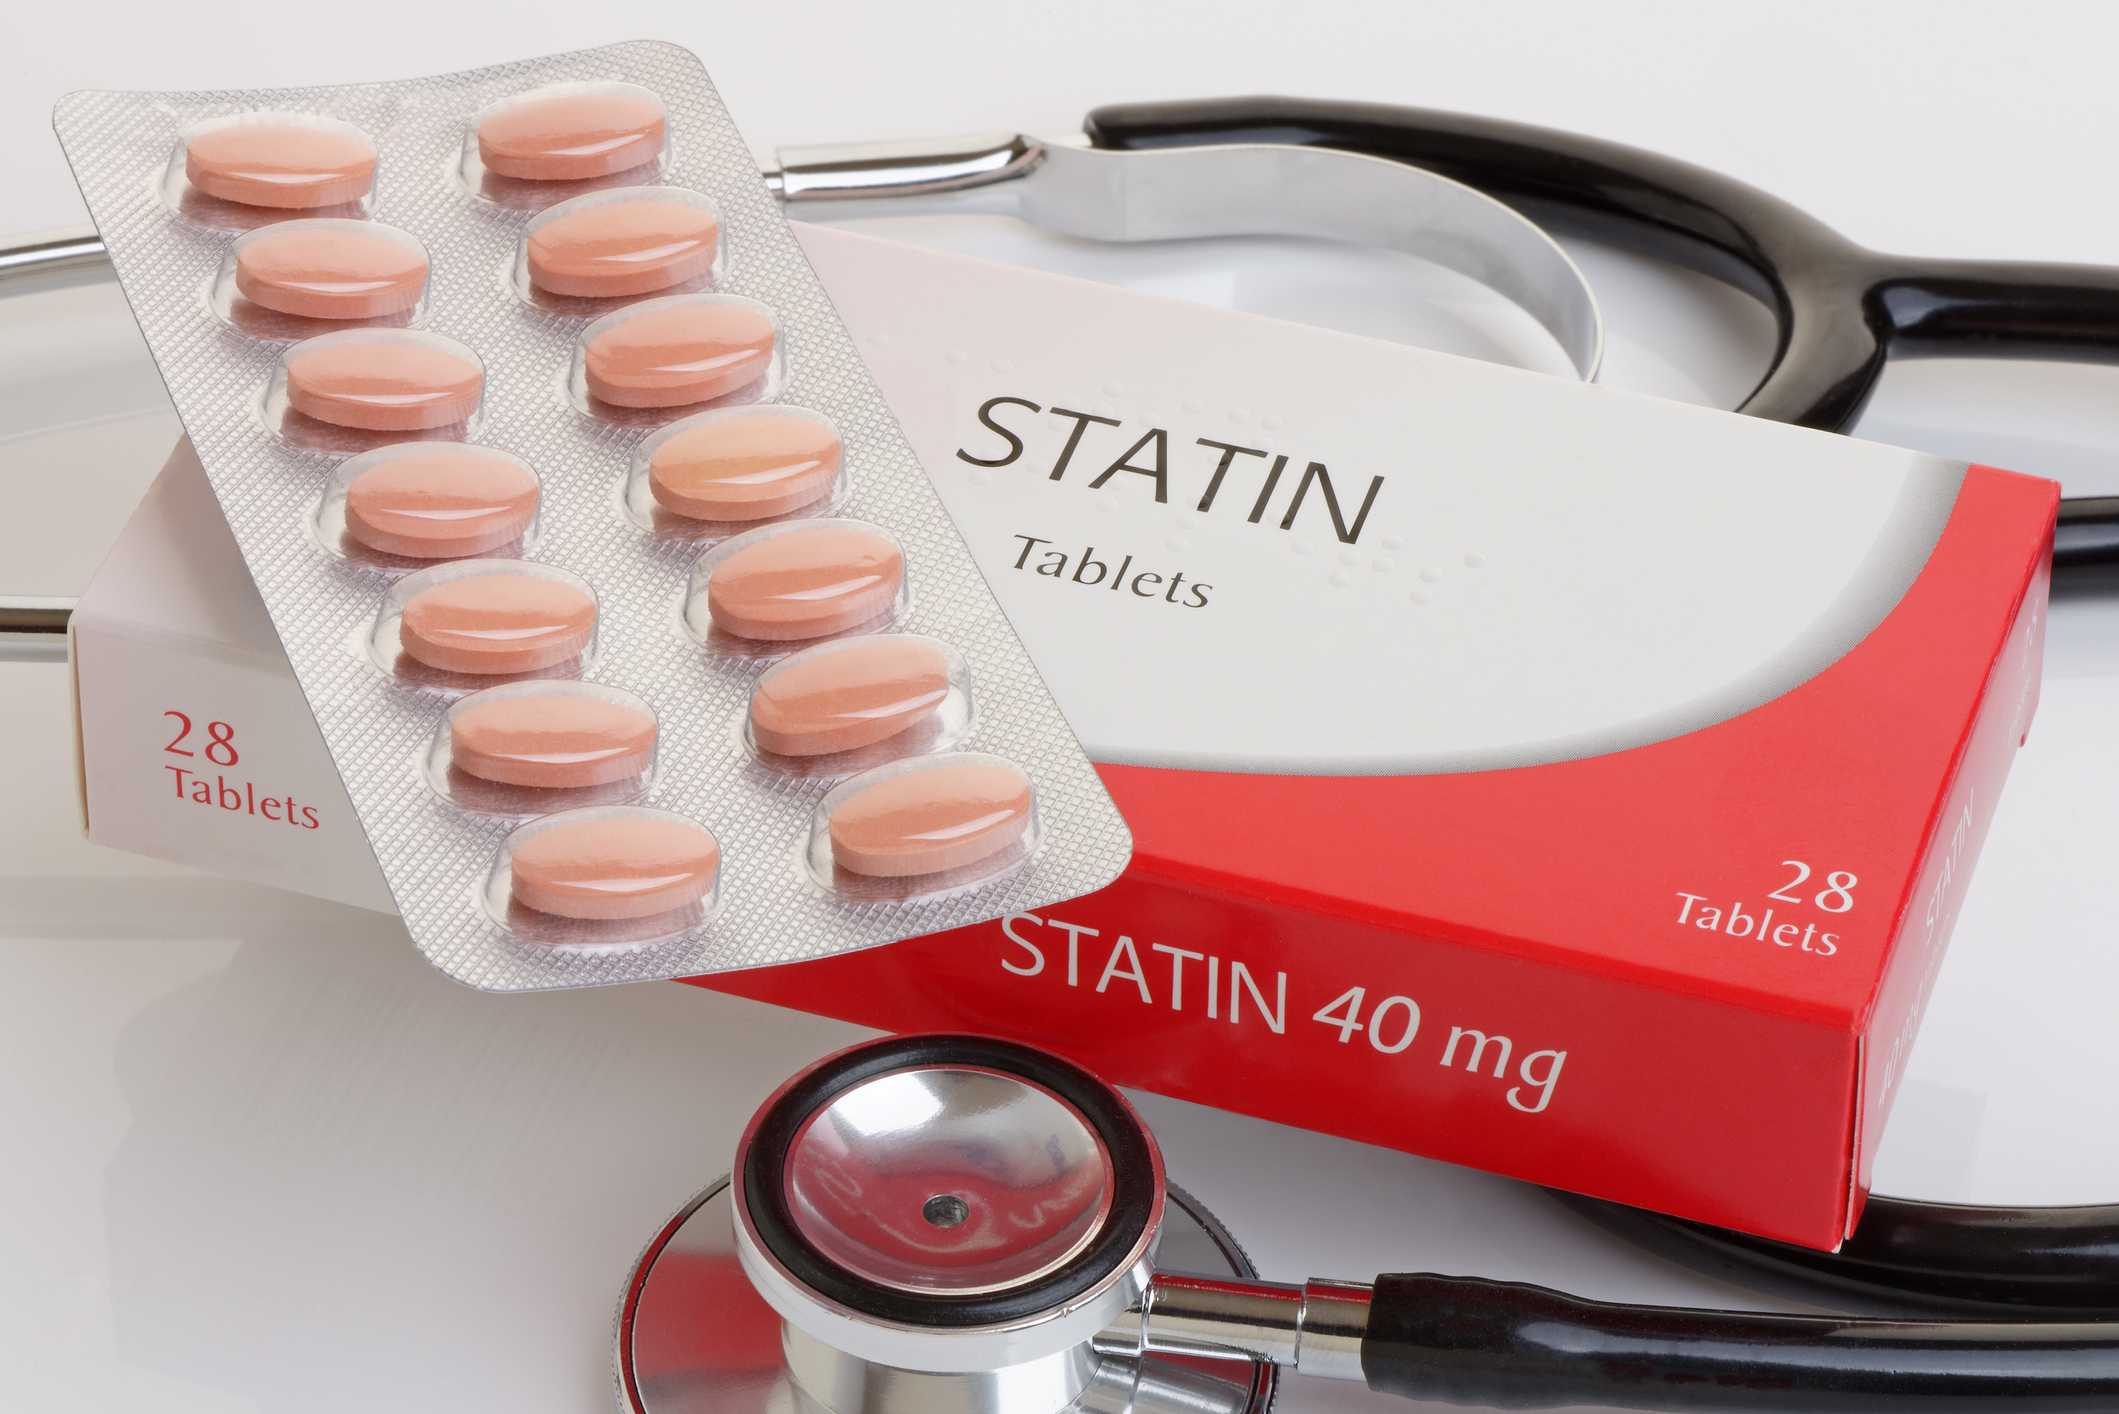 N-of-1 Trial of a Statin, Placebo, or No Treatment to Assess Side Effects